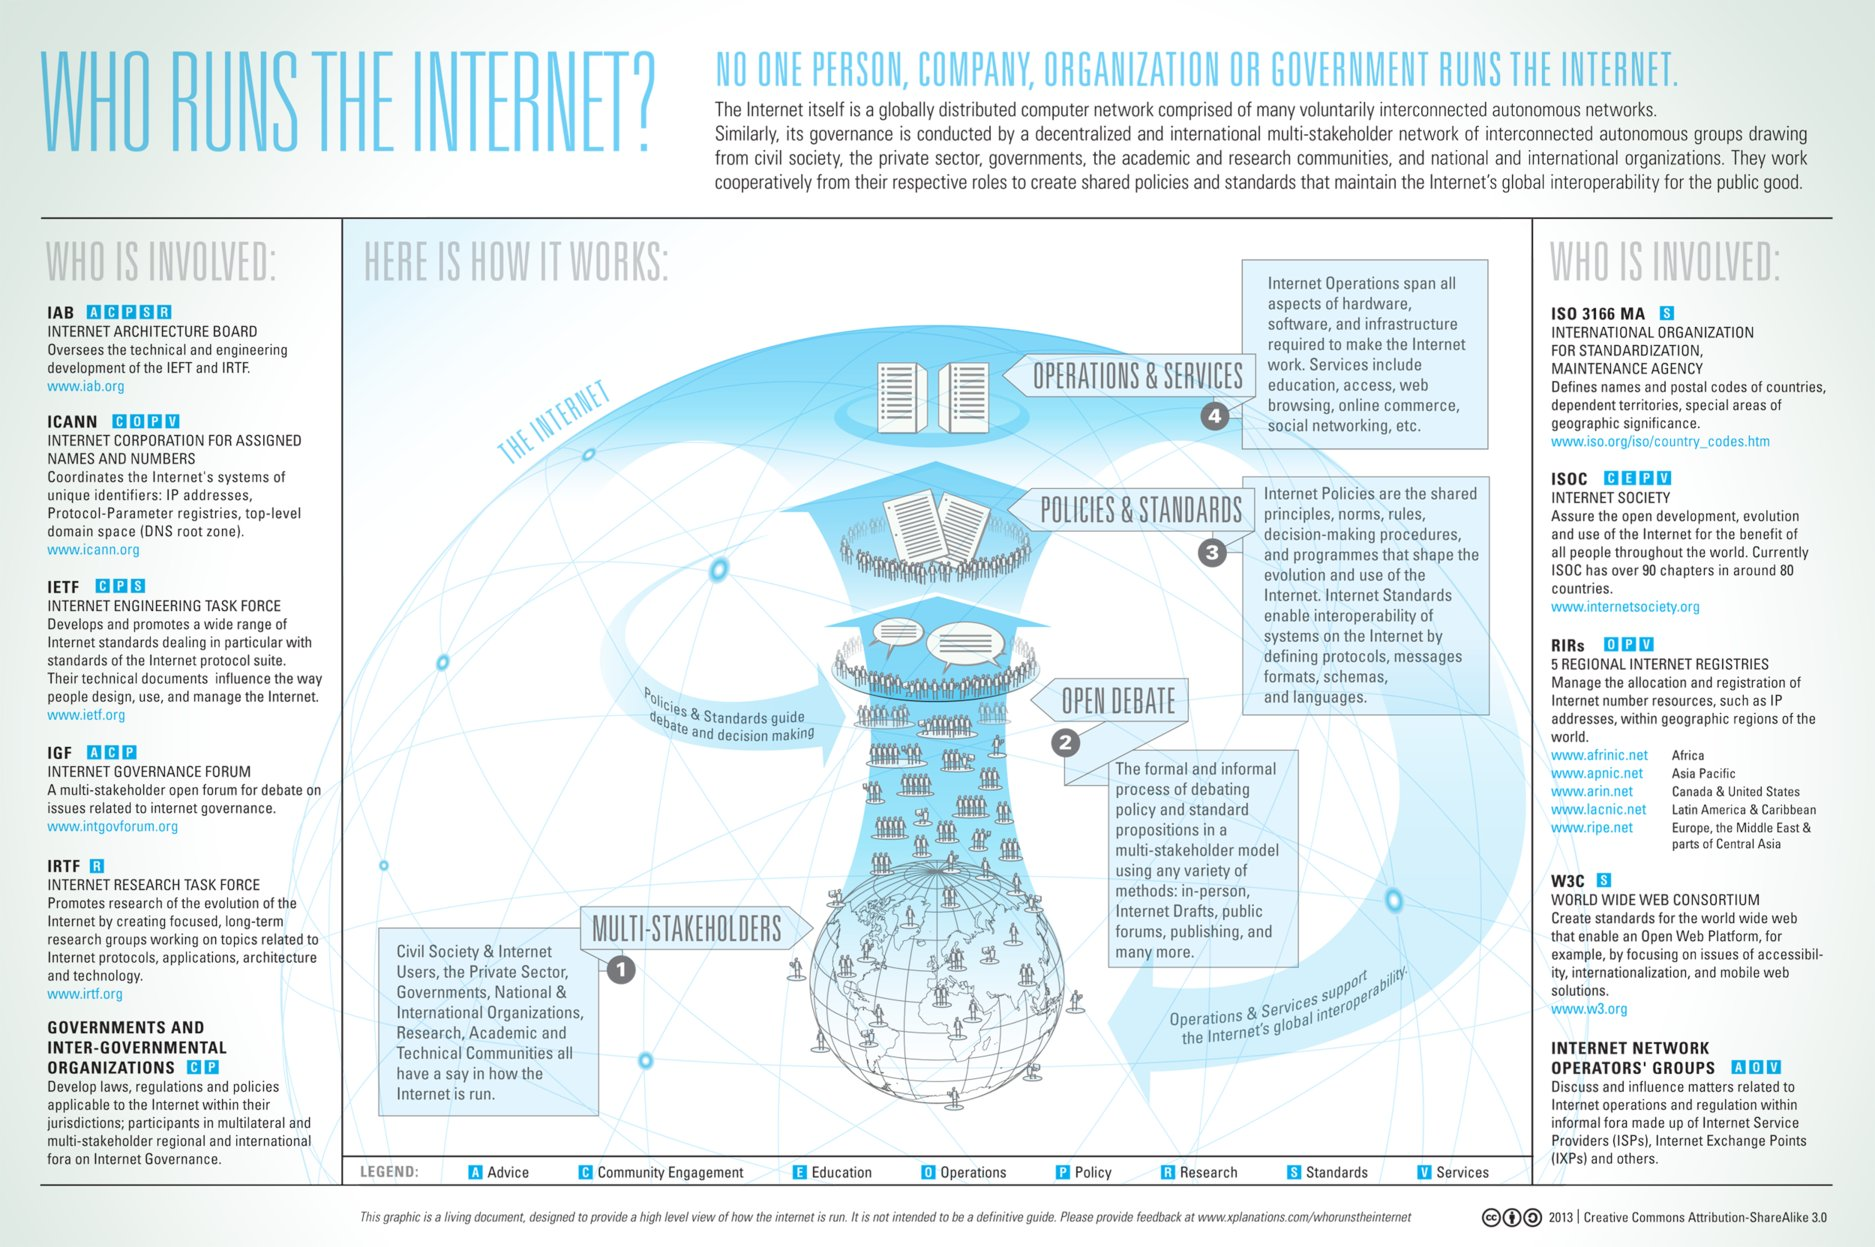 We've Found Answer to Who Runs the Internet [Infographic]